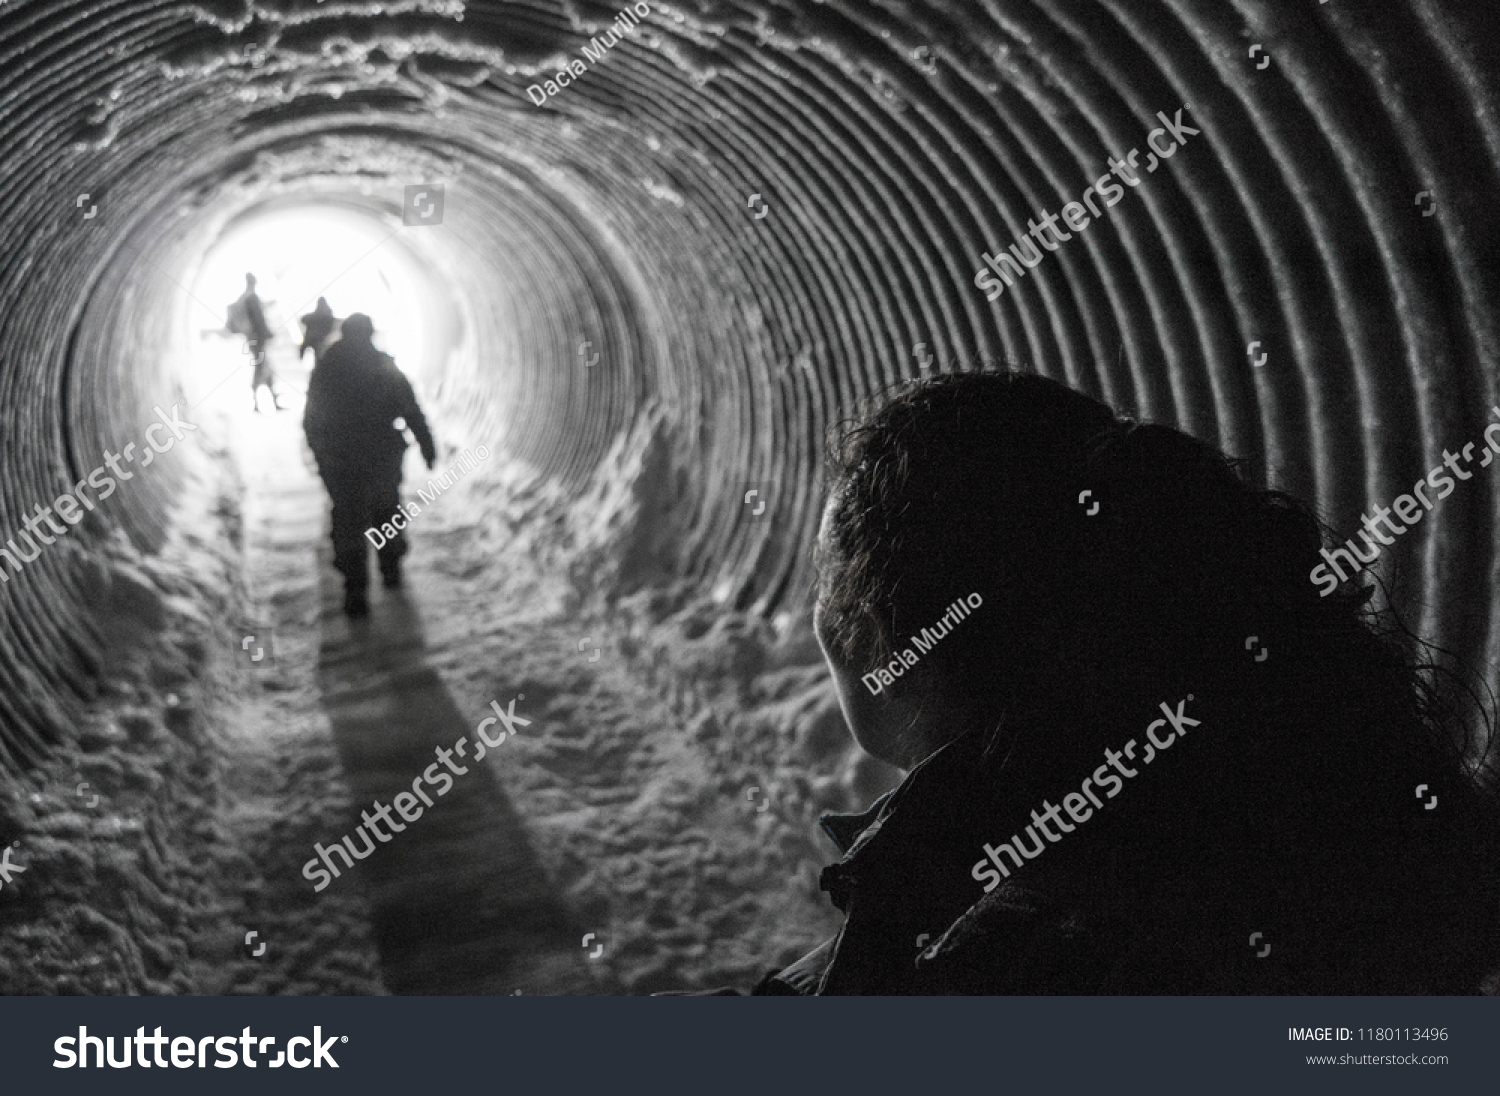 Black and white photo walking through a tunnel towards the light inside a glacier